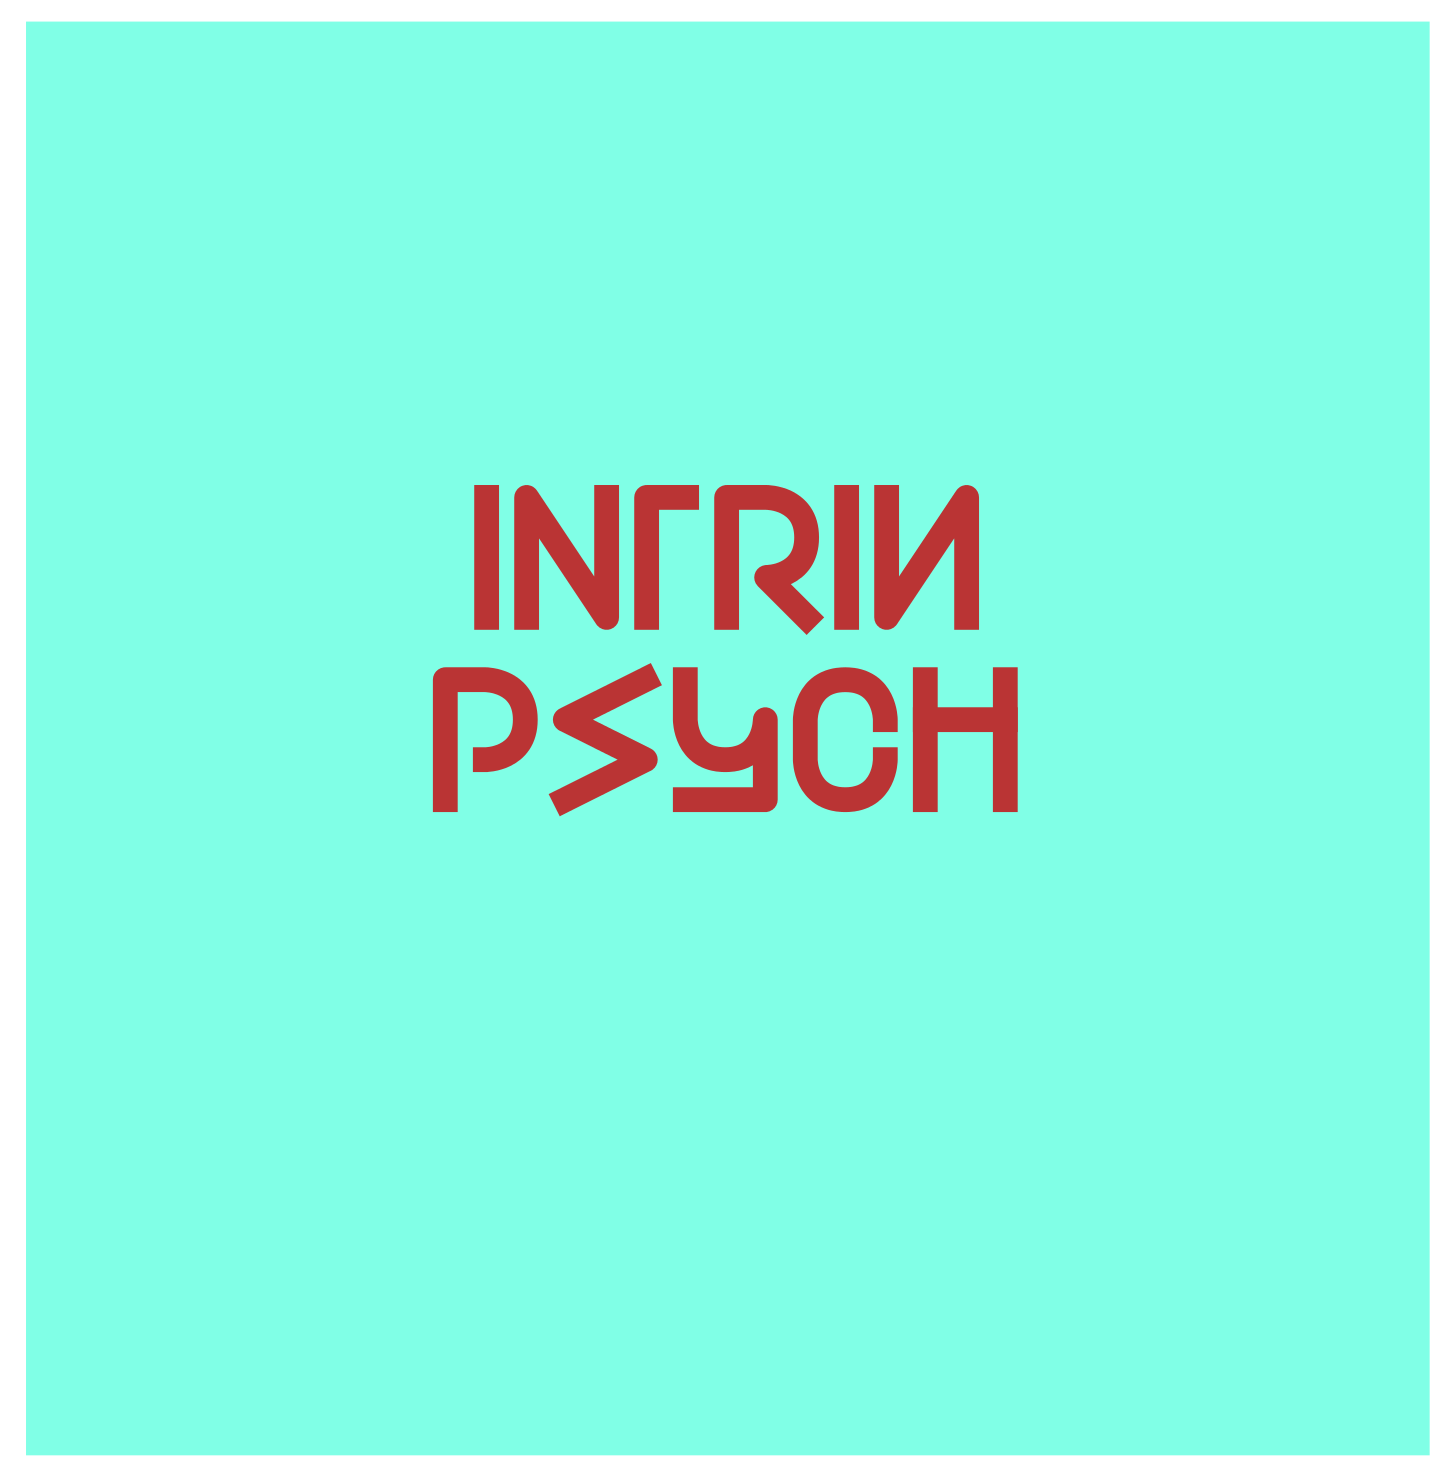 Logo Design by JaroslavProcka - Entry No. 215 in the Logo Design Contest New Logo Design for IntrinPsych.